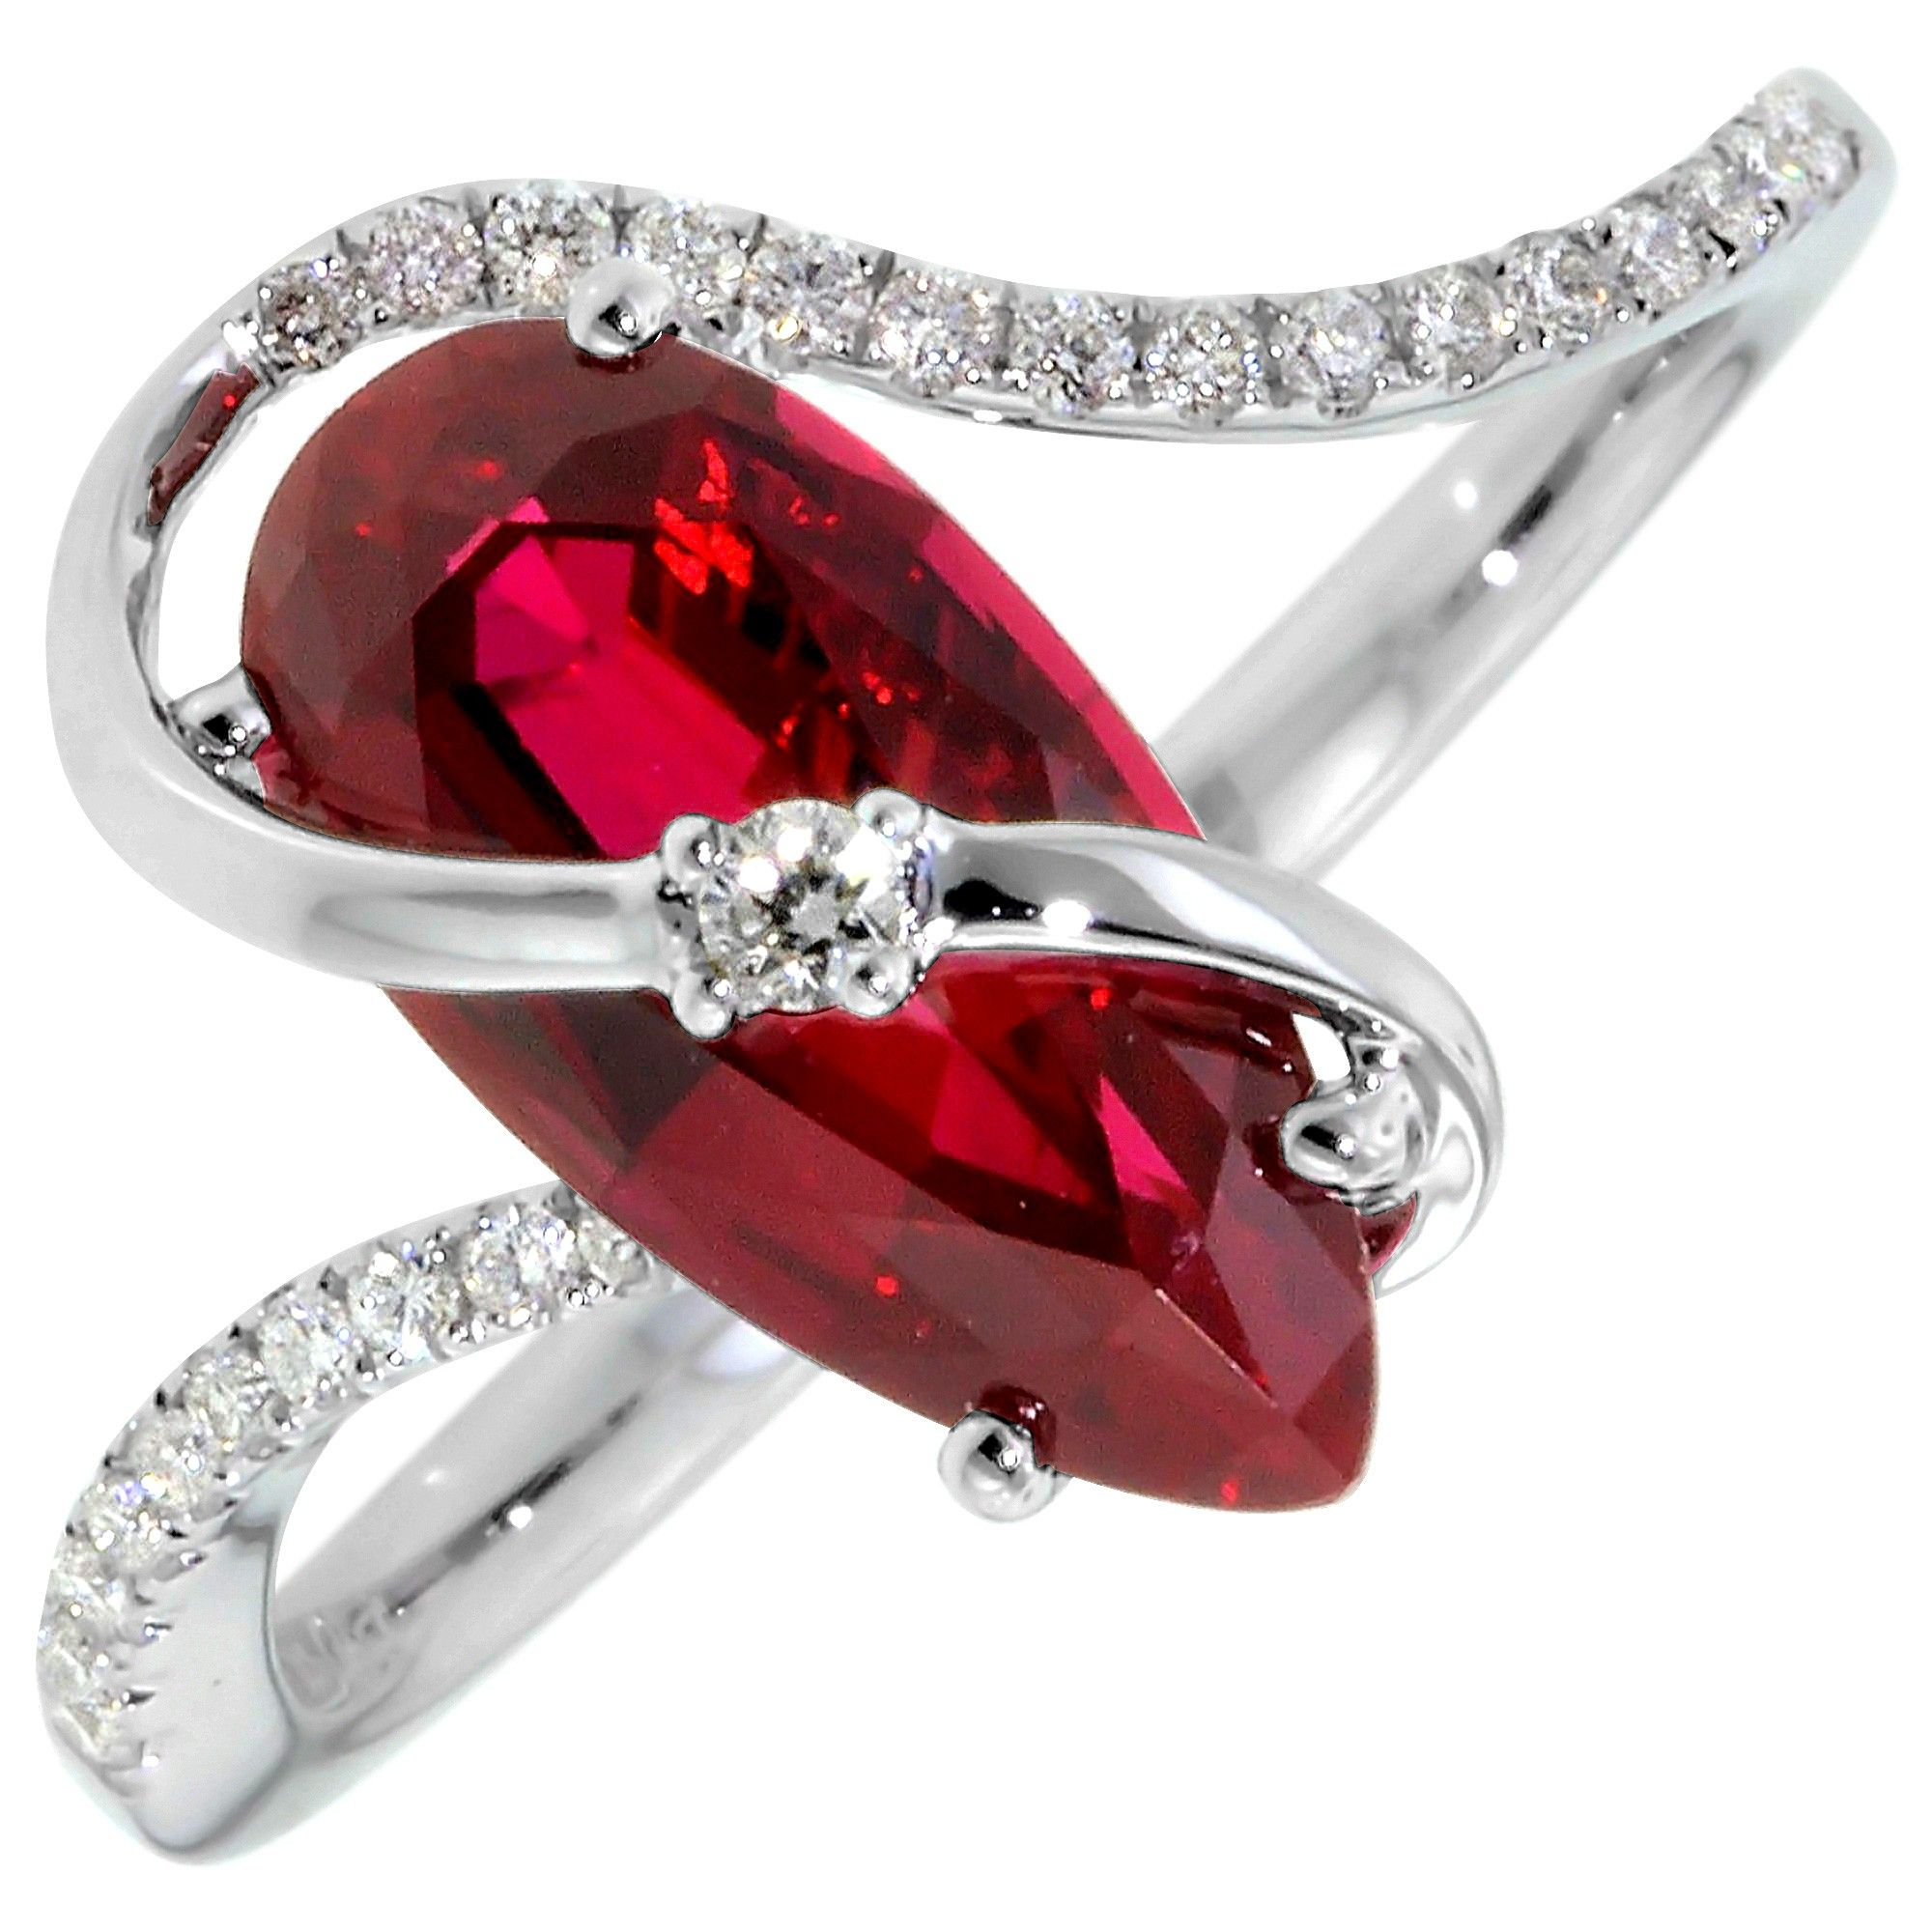 chatham cultured created ruby ring in 14kt white gold with. Black Bedroom Furniture Sets. Home Design Ideas